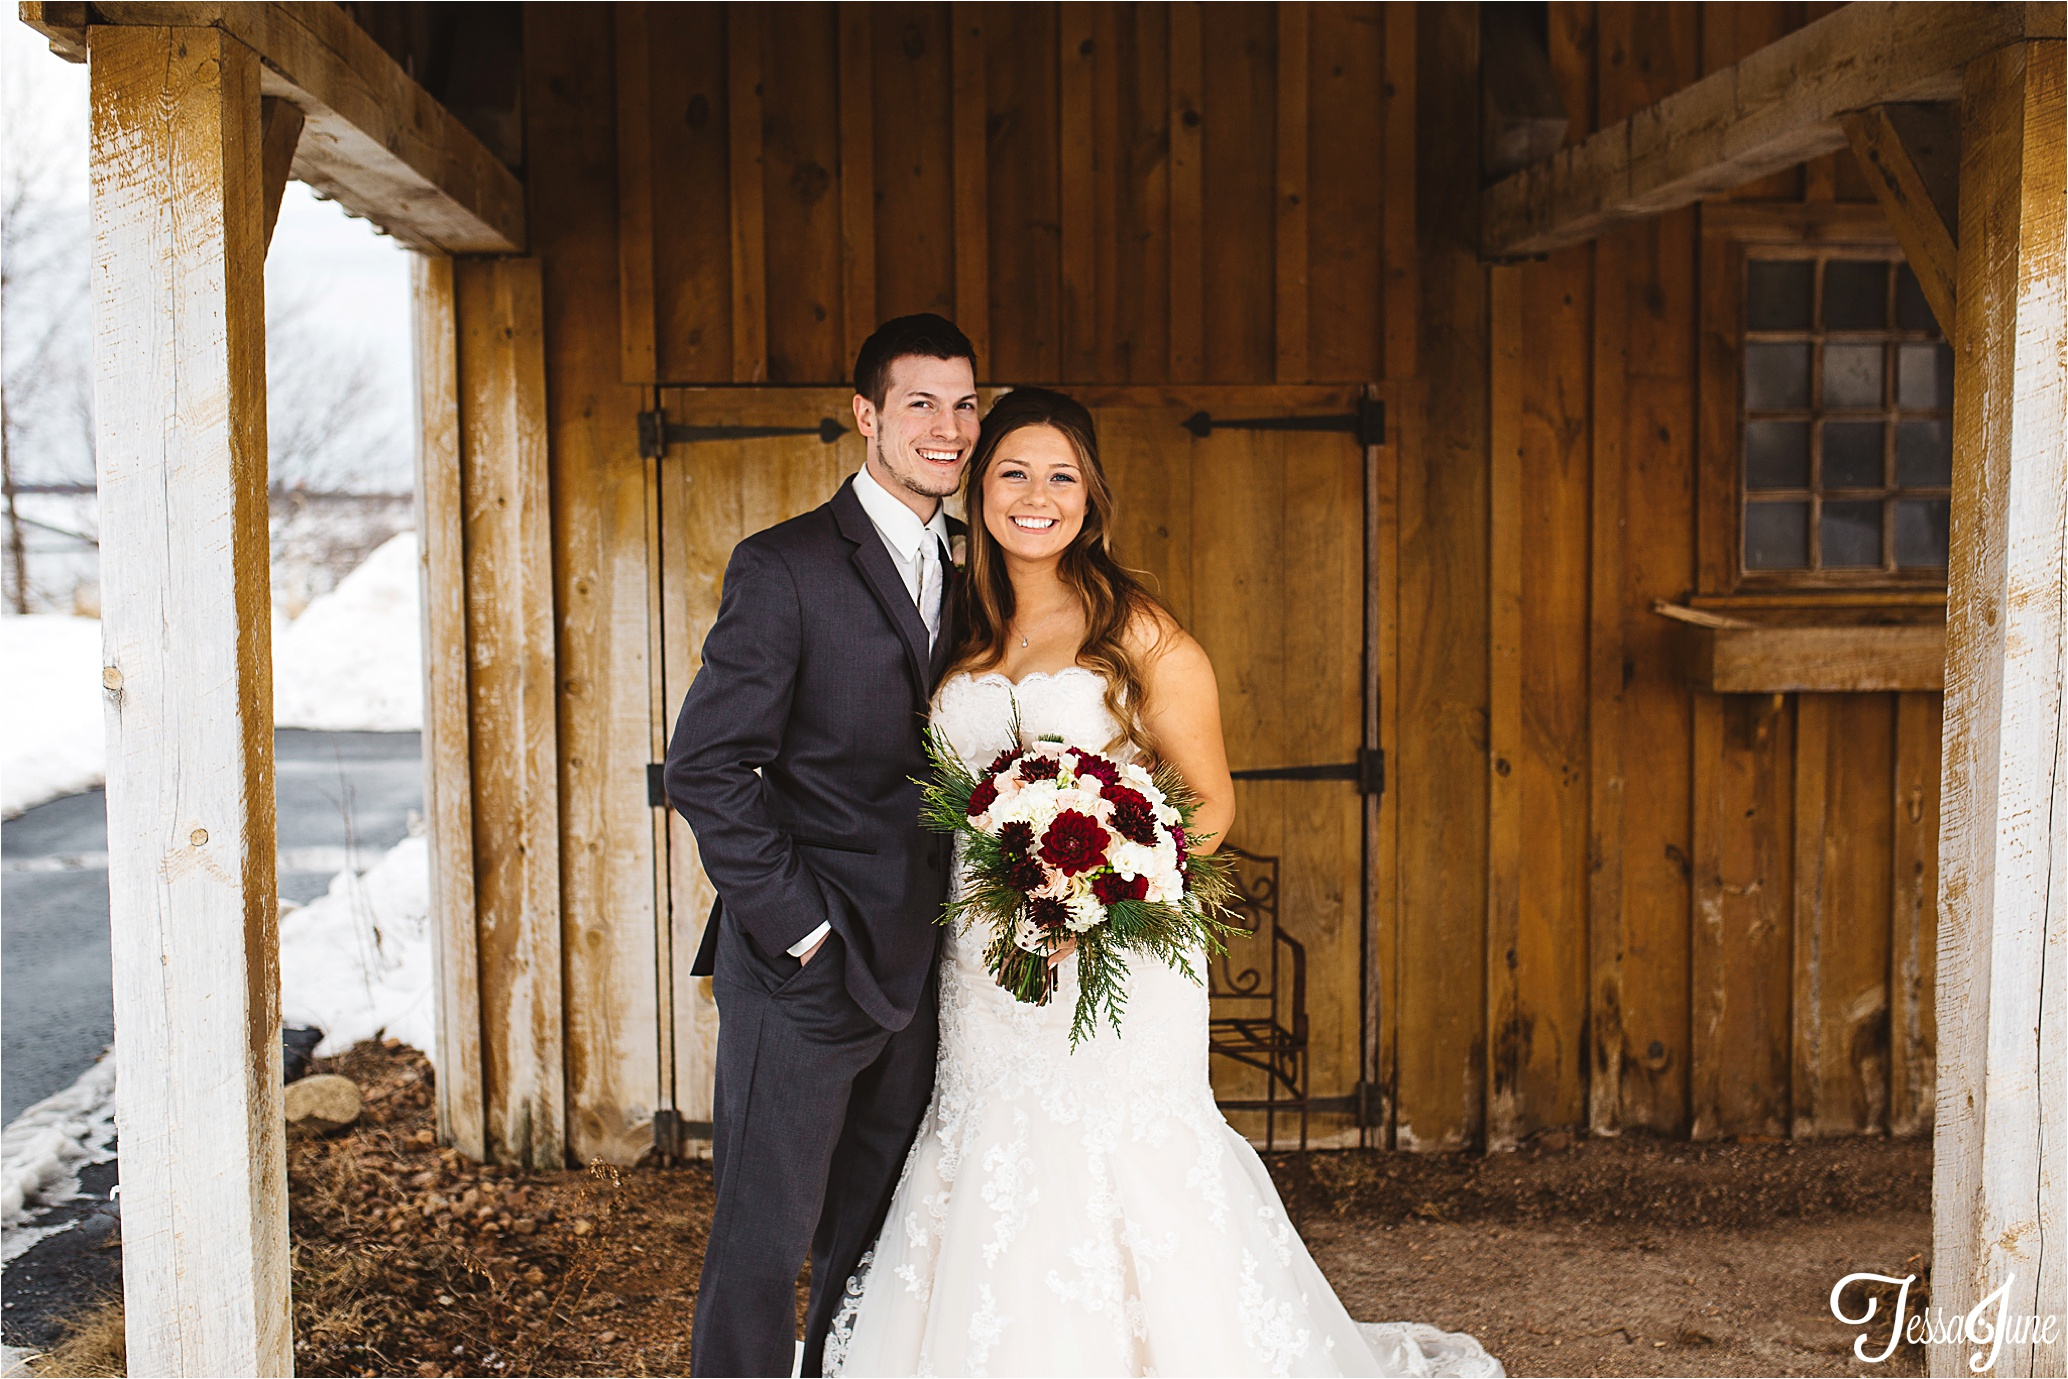 st-cloud-minnesota-wedding-photographer-the-outpost-center-chaska-snow-winter-romantic